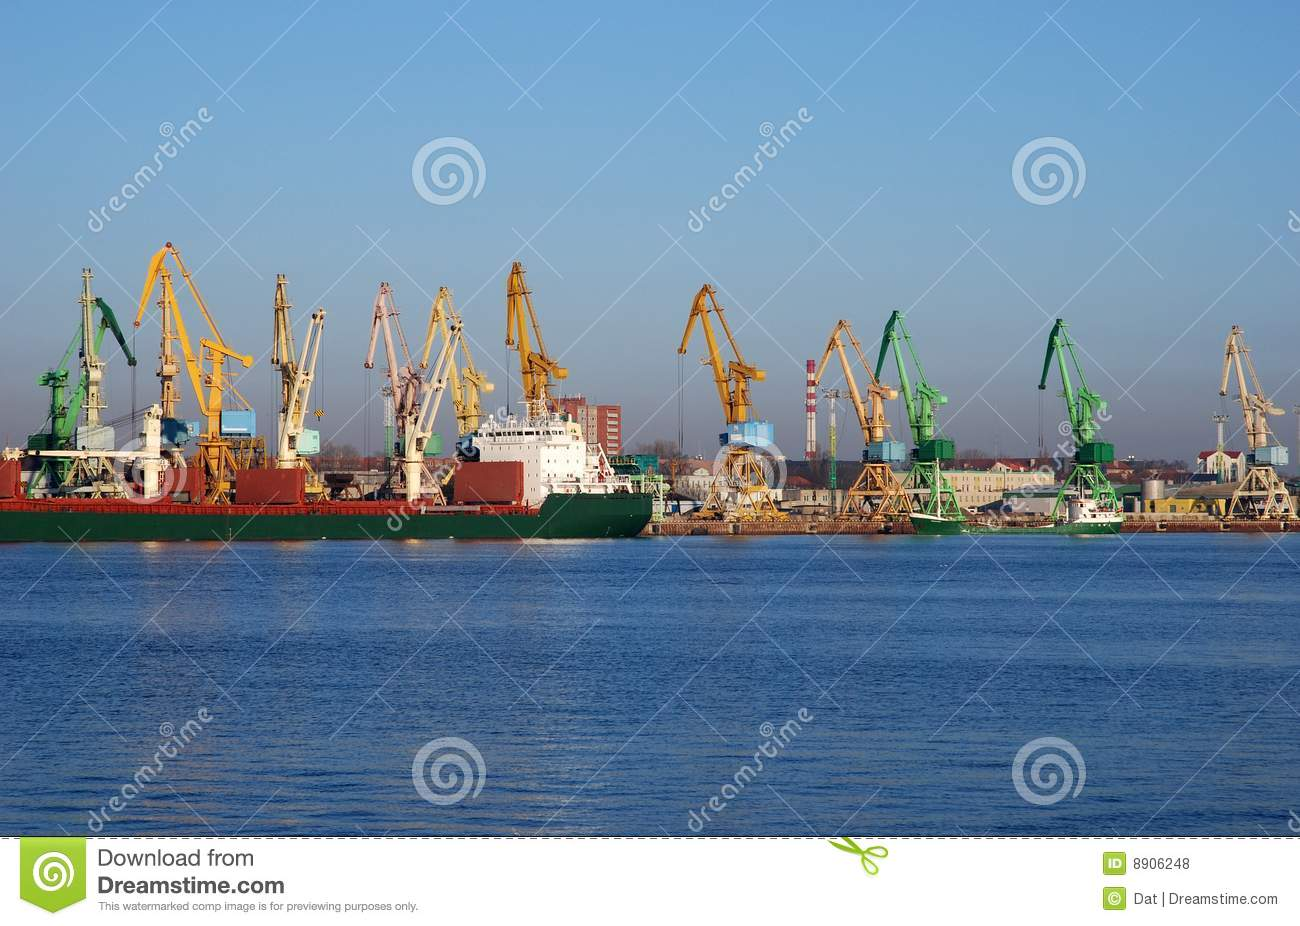 port crane online dating Ap moller - maersk is an integrated transport and logistics company with multiple brands and is a global leader in container shipping and ports including a stand.